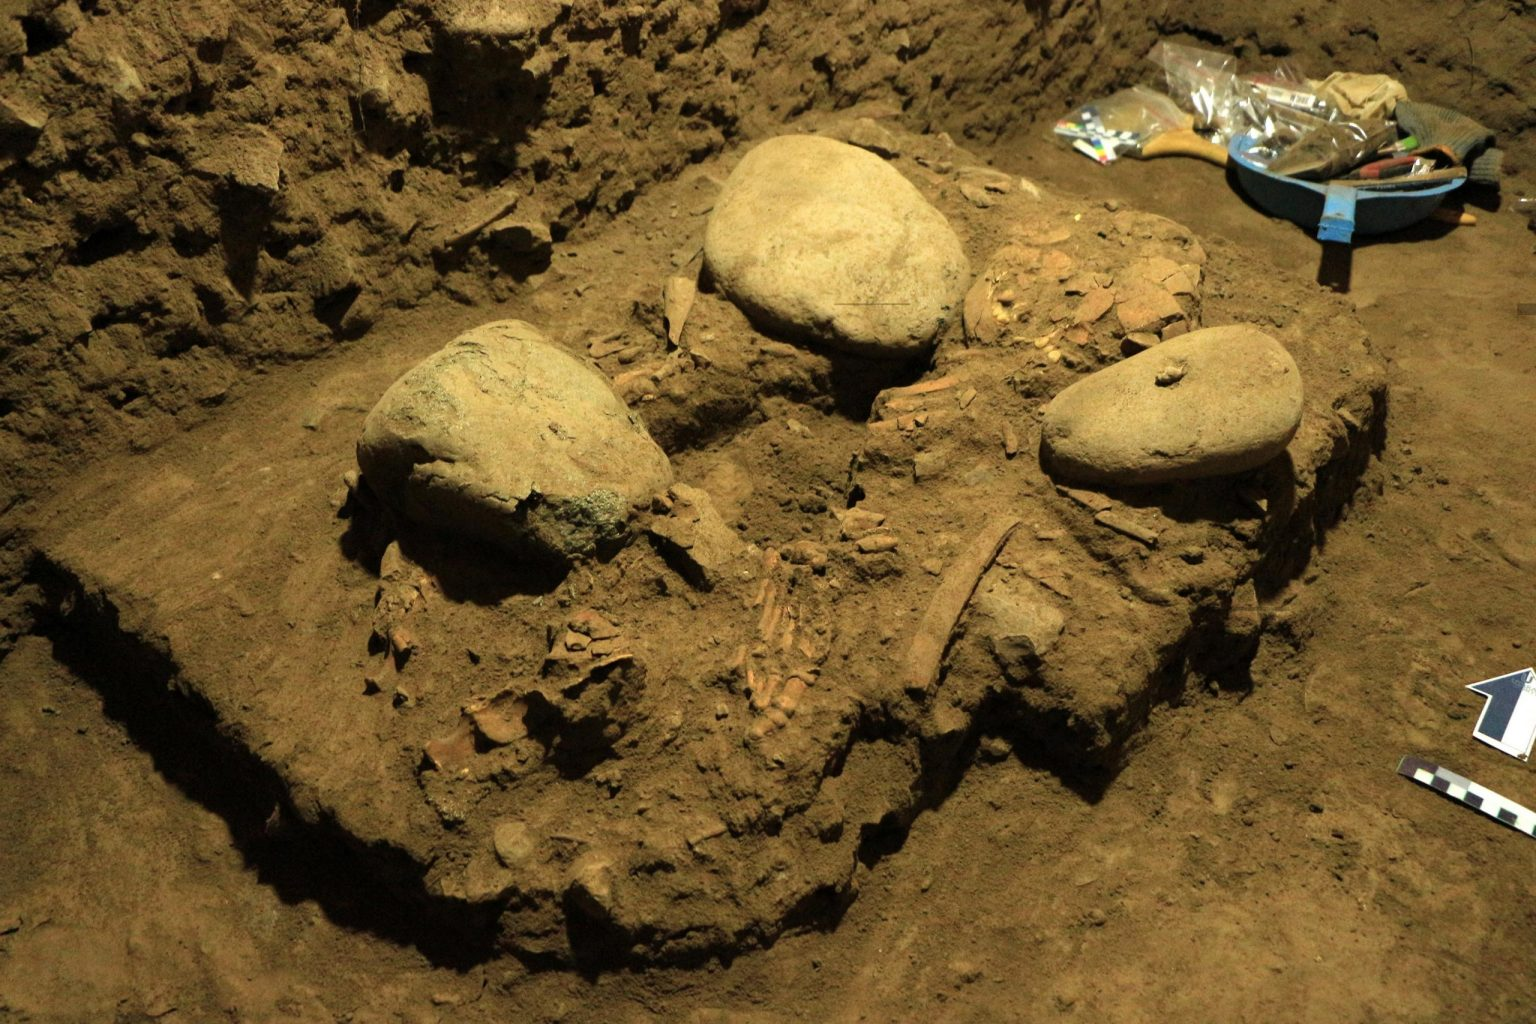 """The """"almost preserved skeleton"""" of the 'new human' found in the Leang Panninge cave. Credit: University of Hasanuddin"""